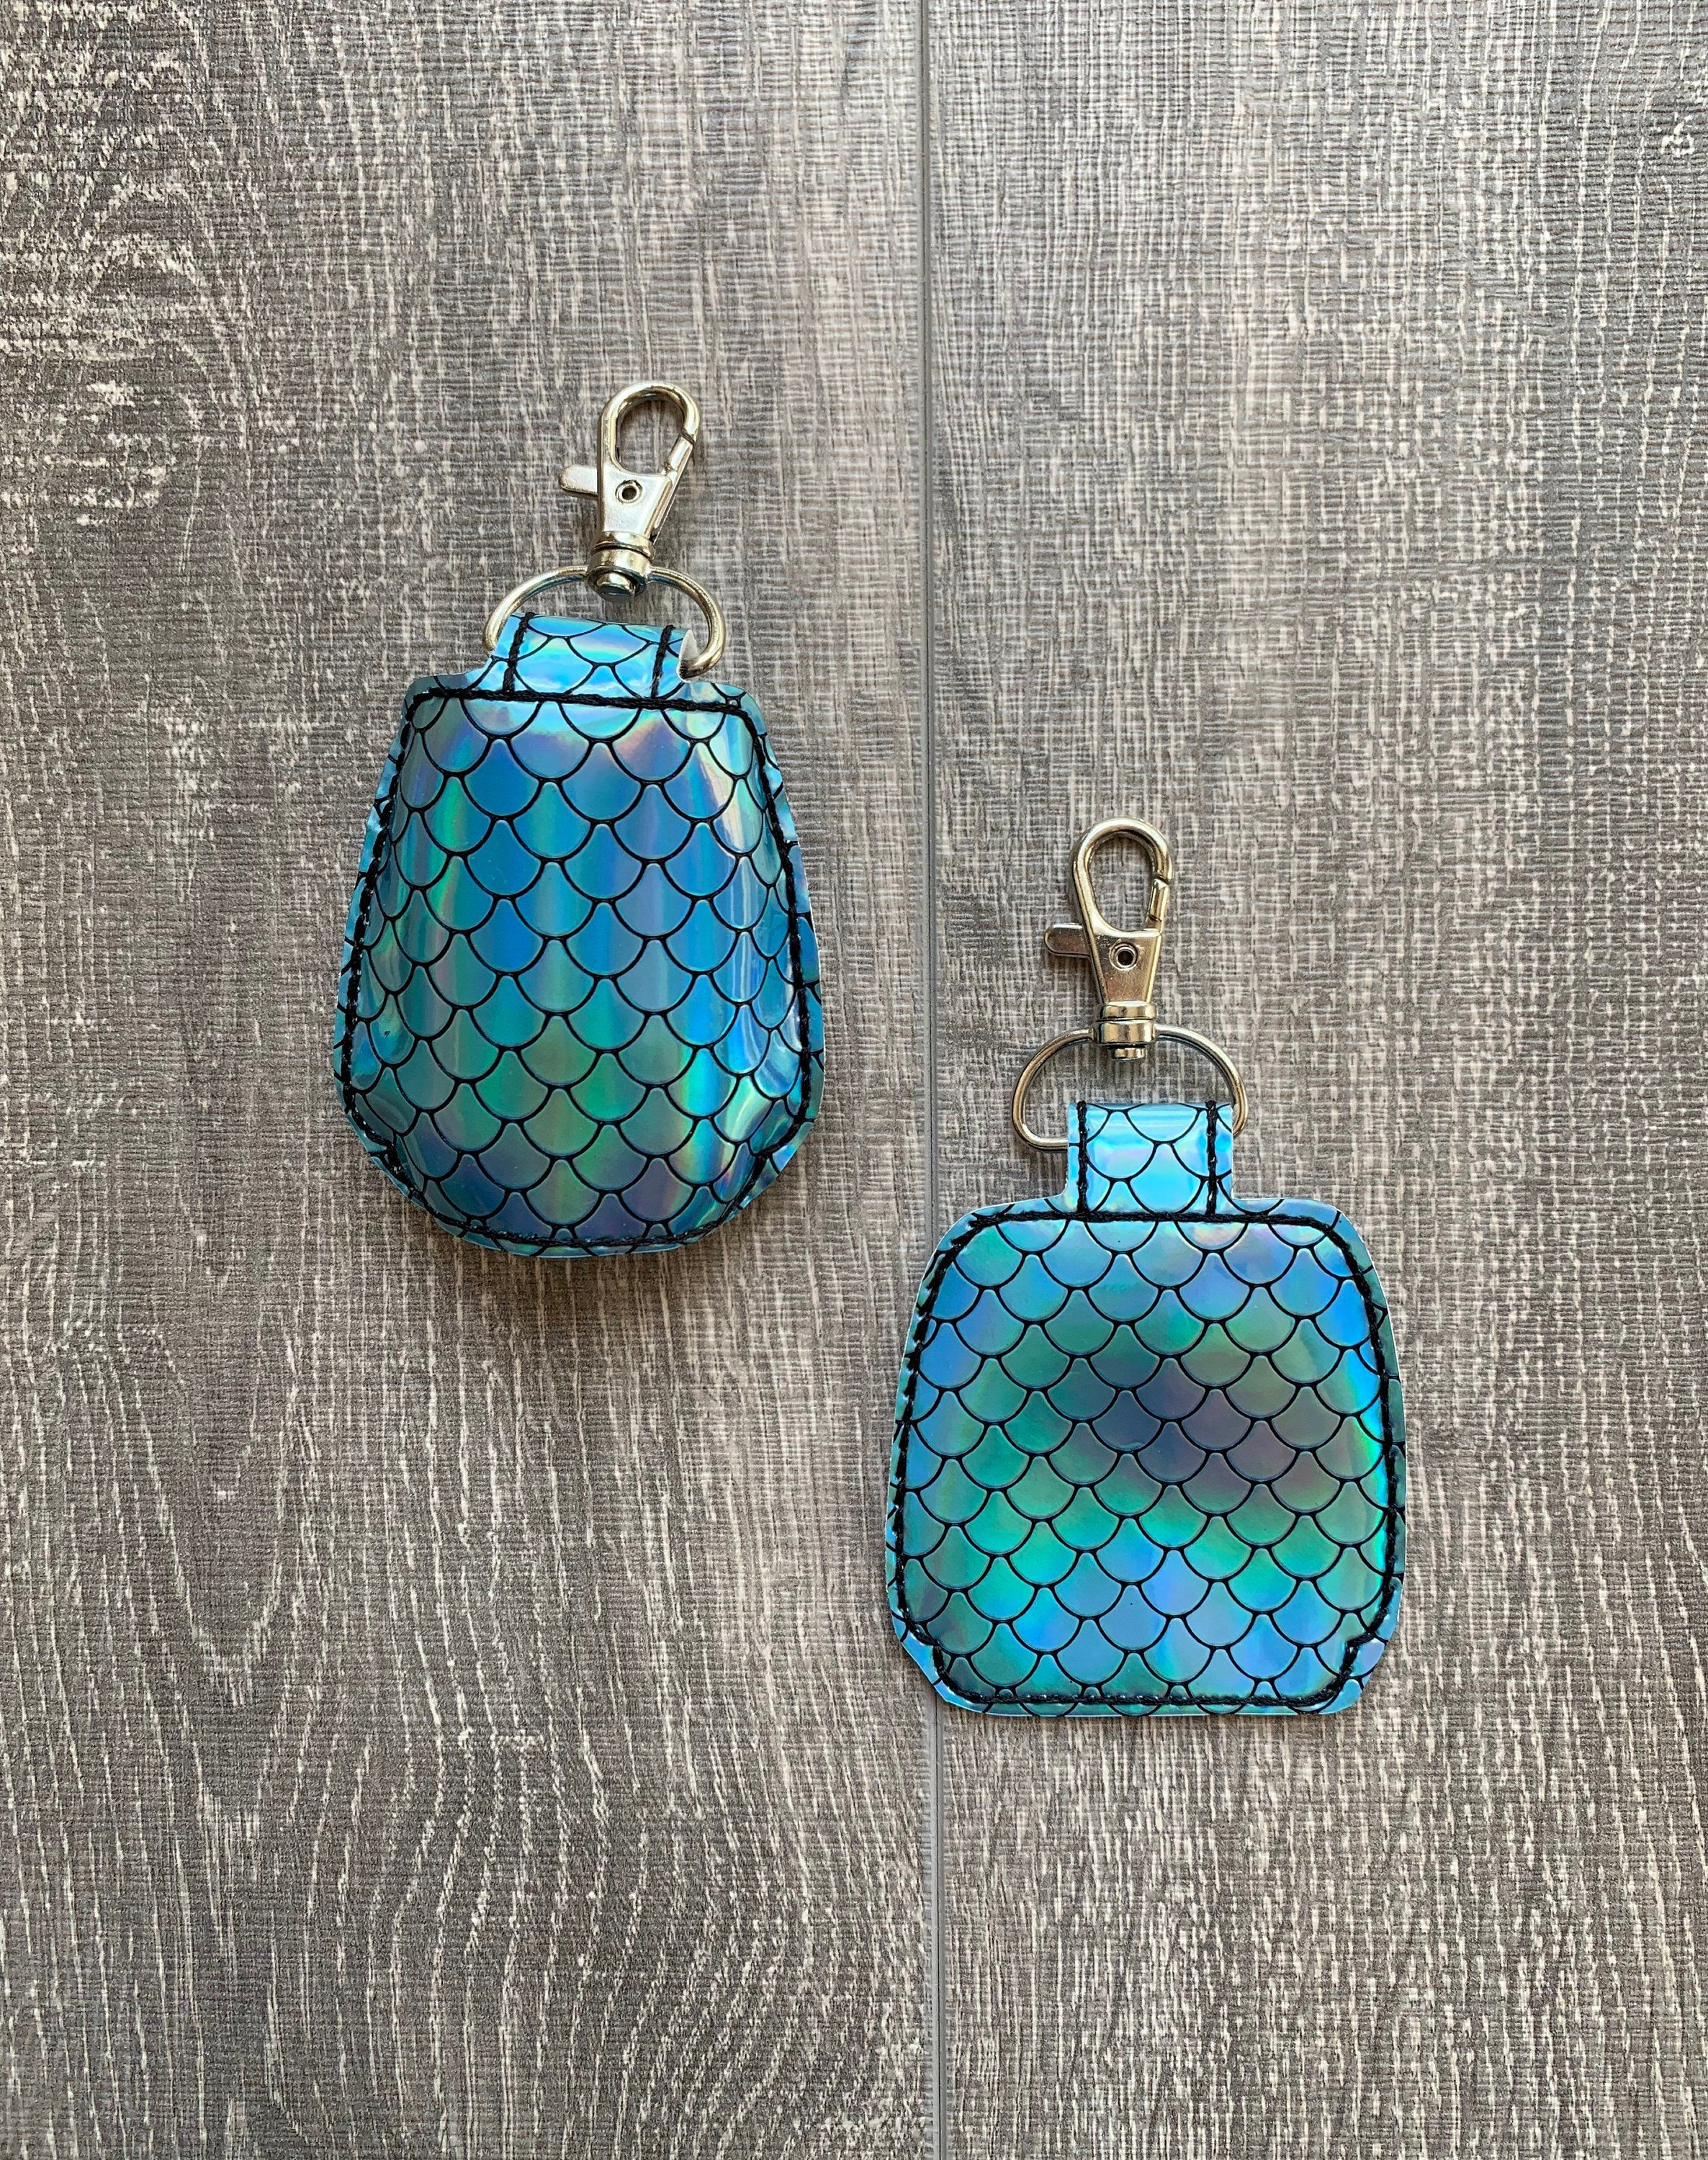 Holographic Mermaid Hand Sanitizer Holder Hand Sanitizer Holder